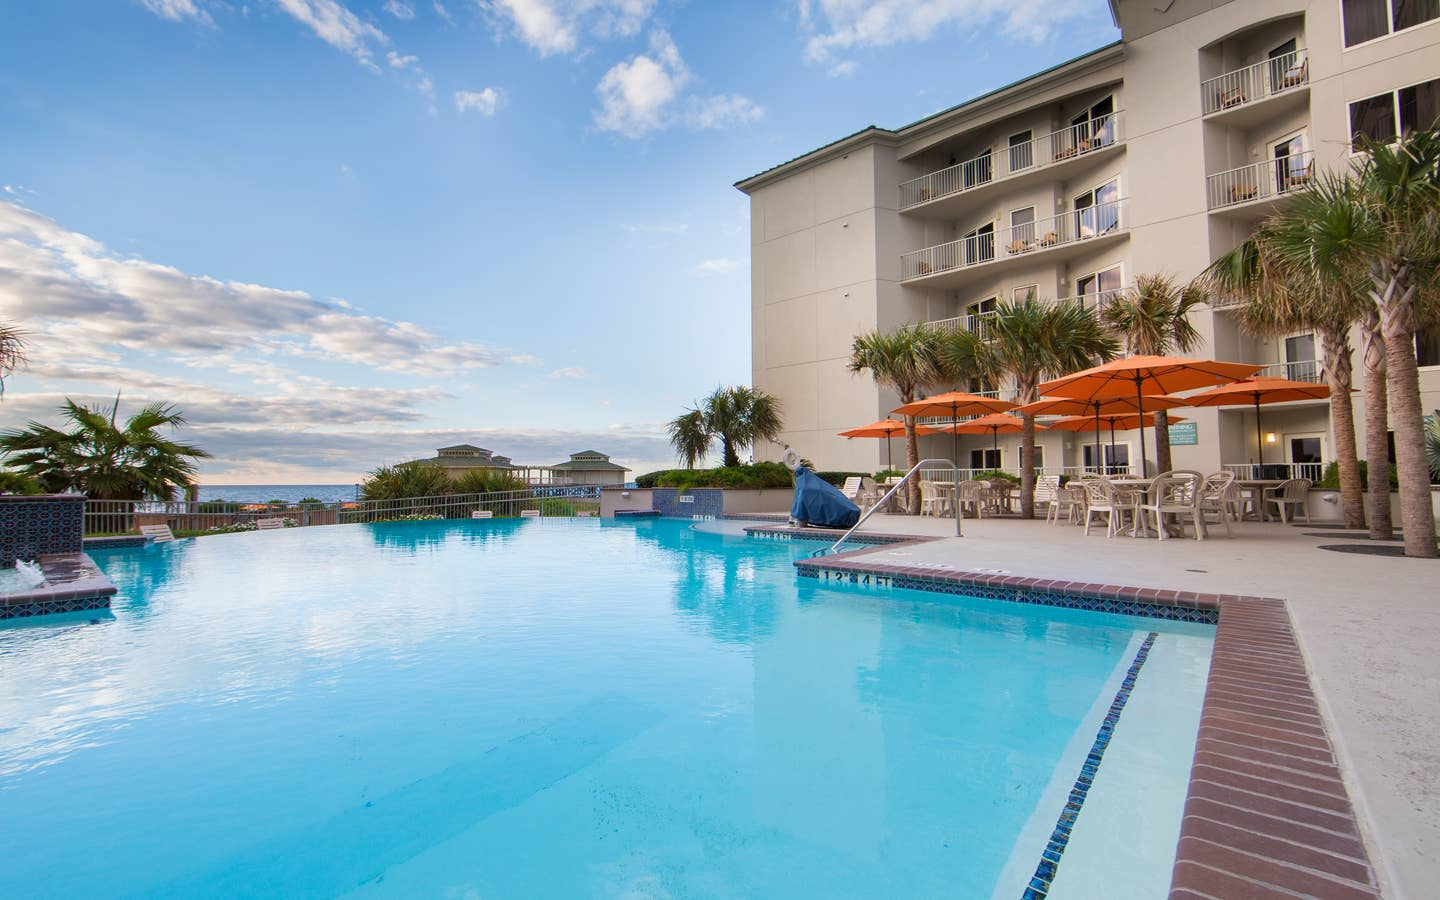 Outdoor pool surrounded by palm trees and umbrelles at Galveston Beach Resort